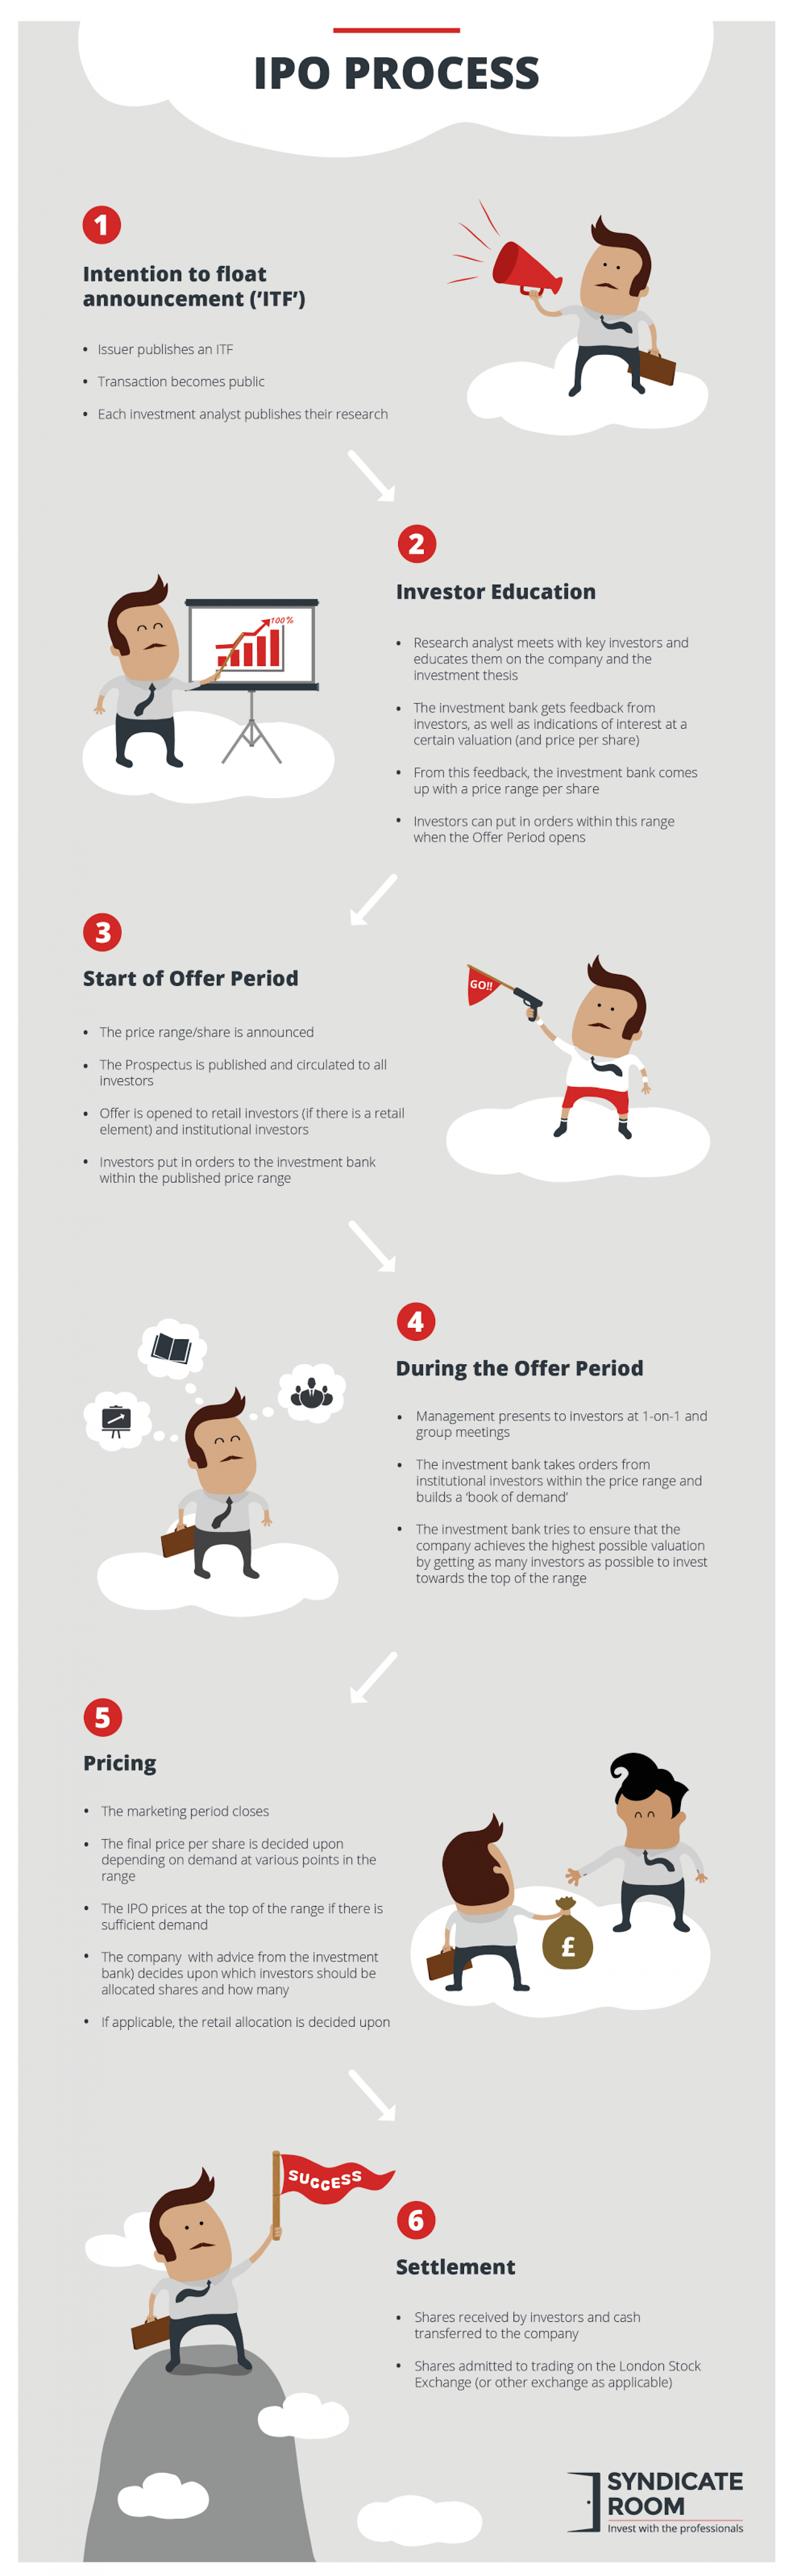 Explaining the IPO Process Infographic